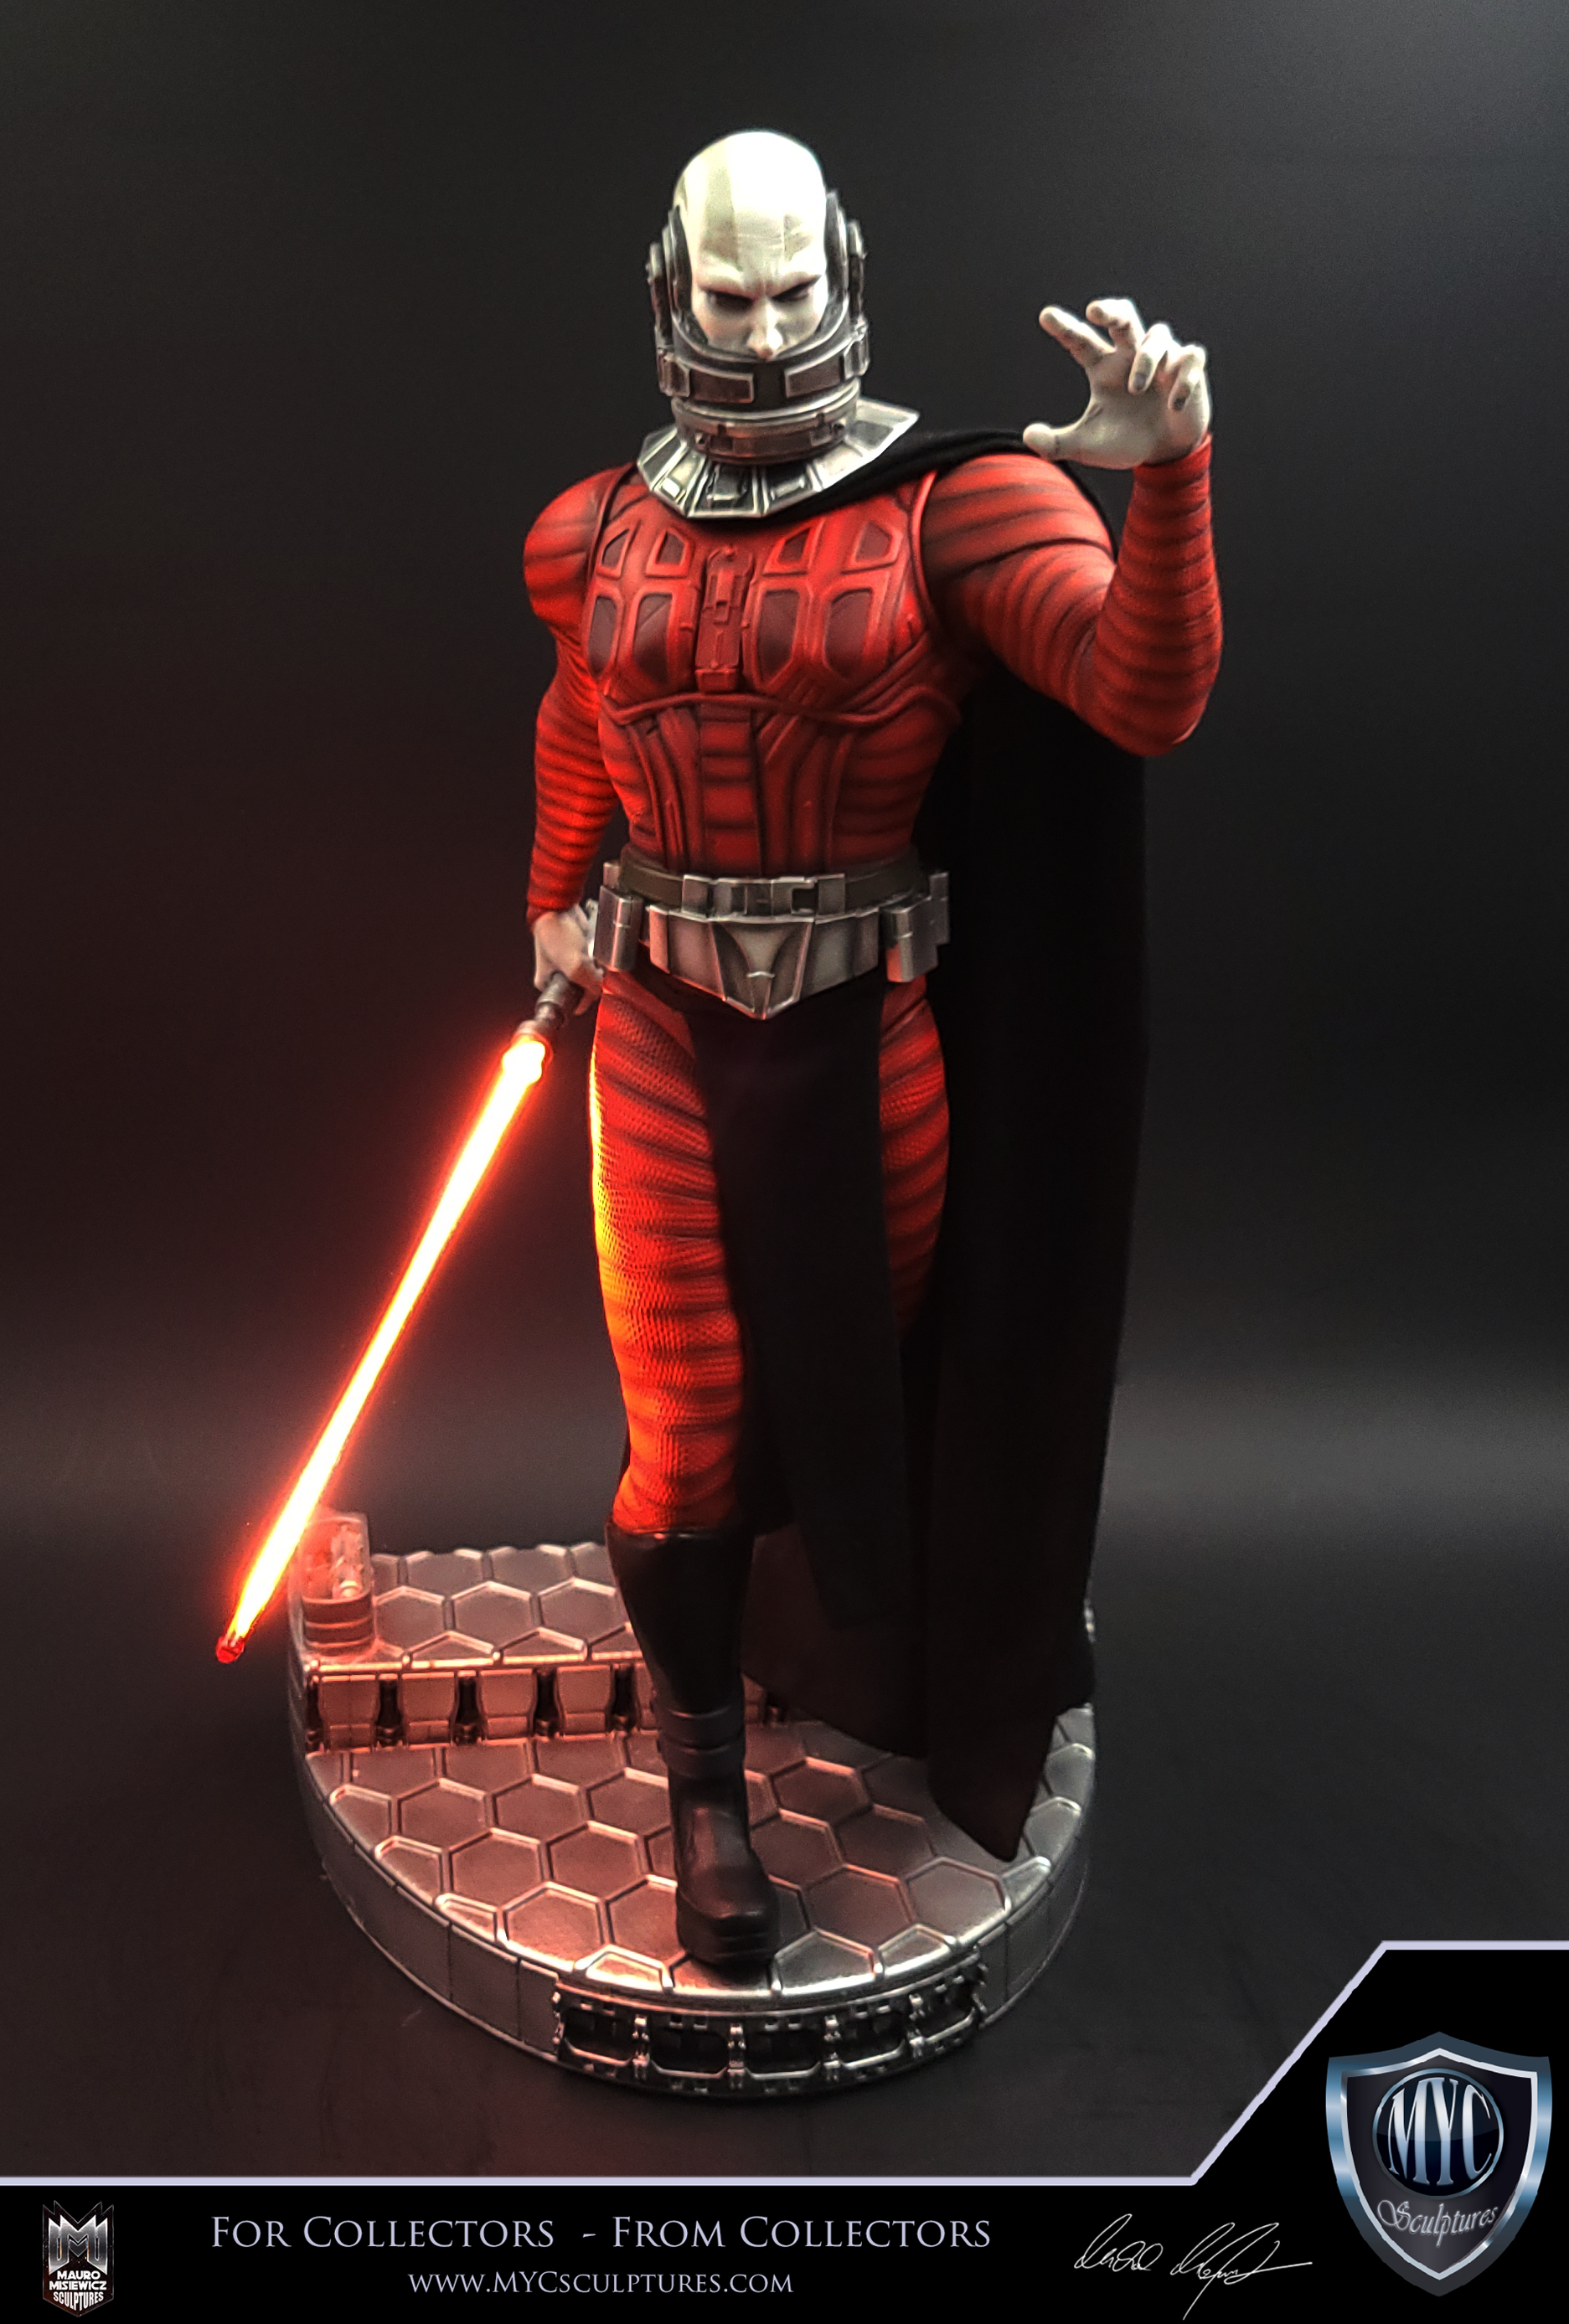 Darth_Malak_MYC_Sculptures_Statue_04